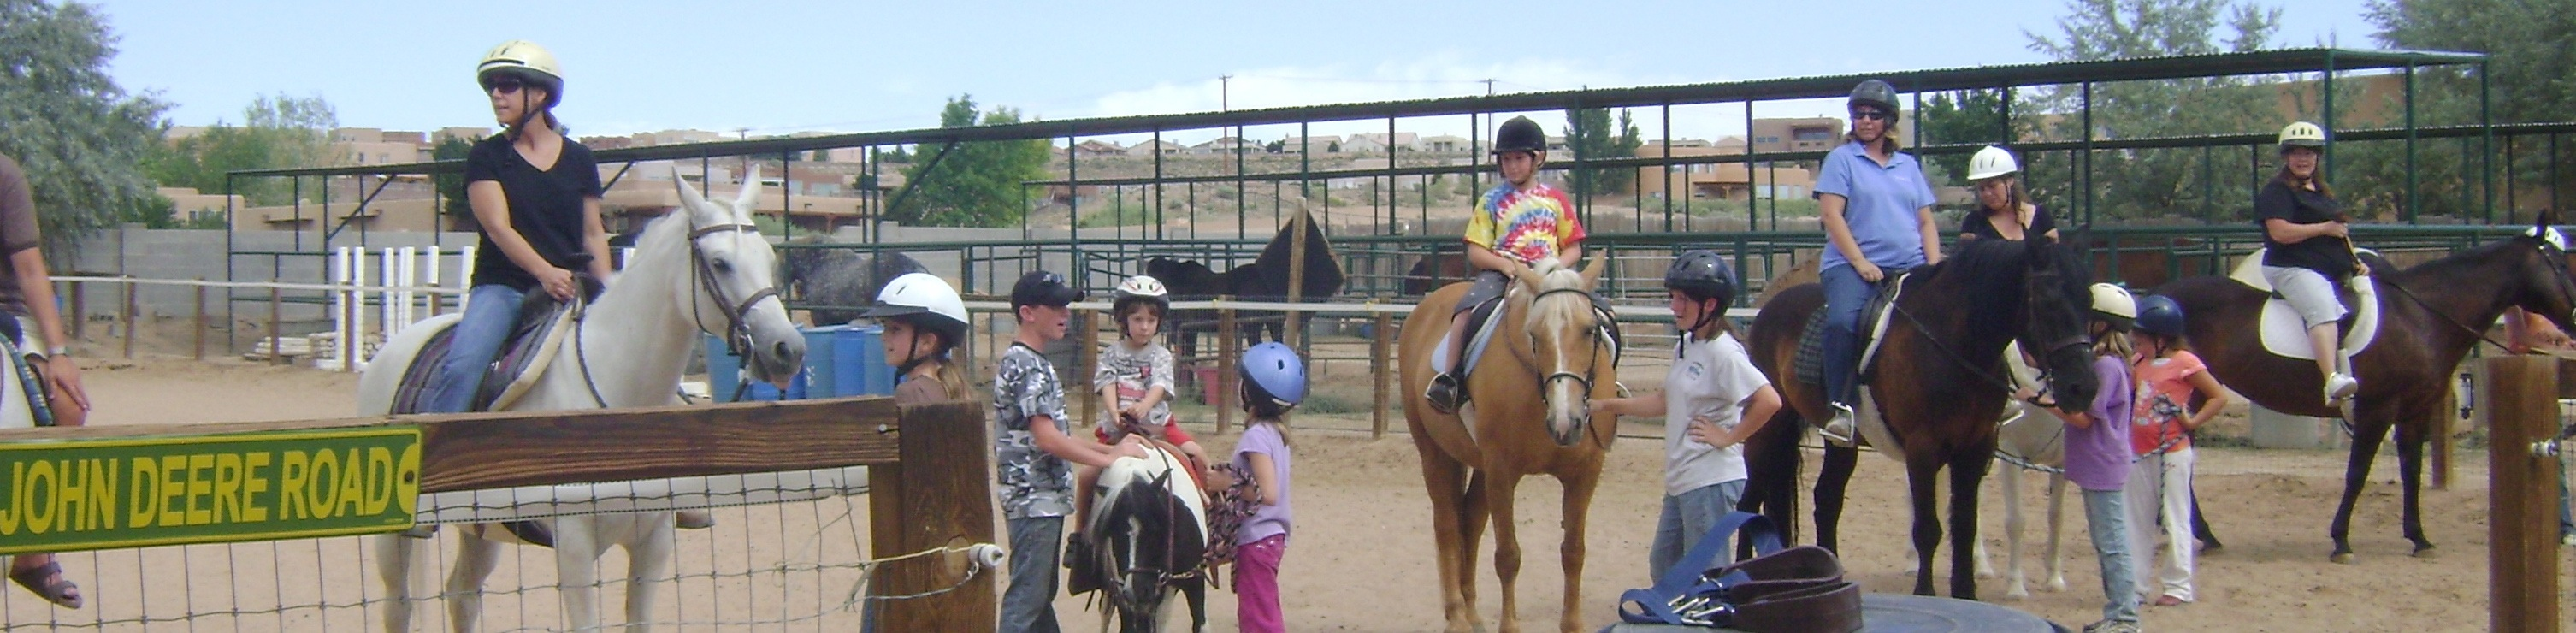 Riders at HIgh C Acres